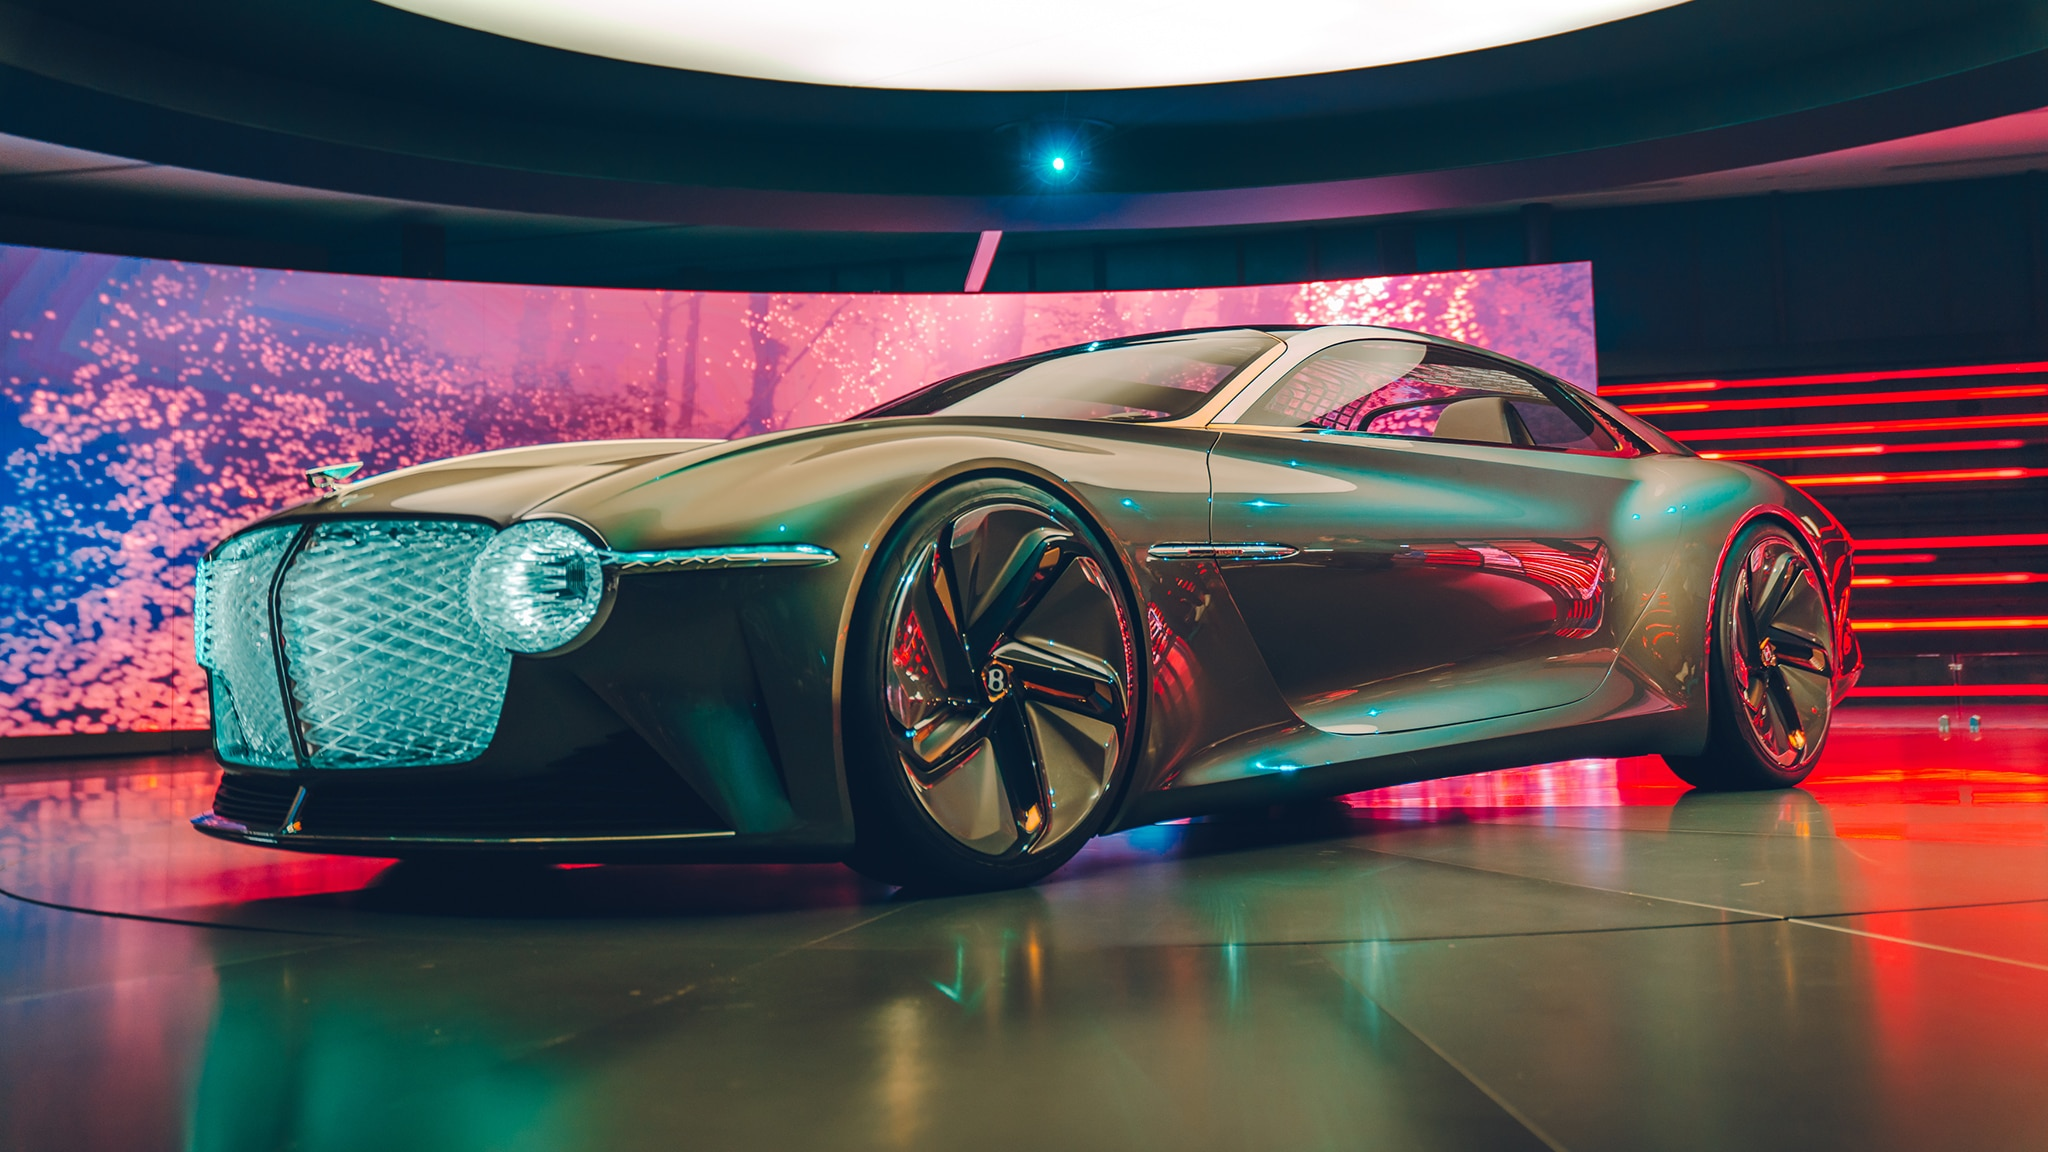 Bentley Exp 100 Gt Concept The Gorgeous Future Of Luxury